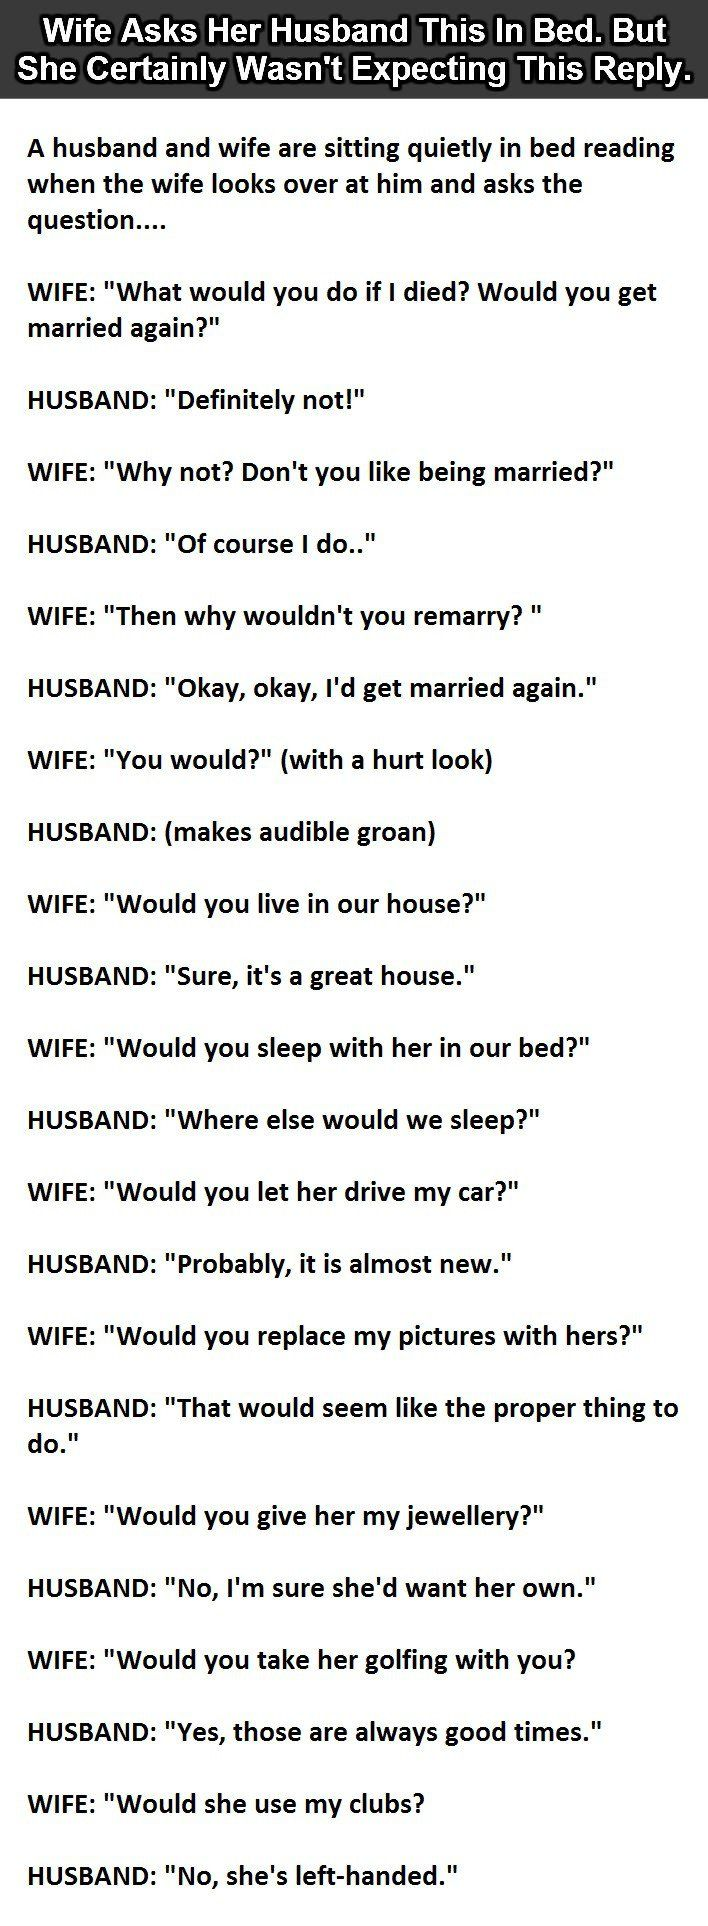 Wife Asks Her Husband This In Bed. But She Certainly Wasn't Expecting This Reply.